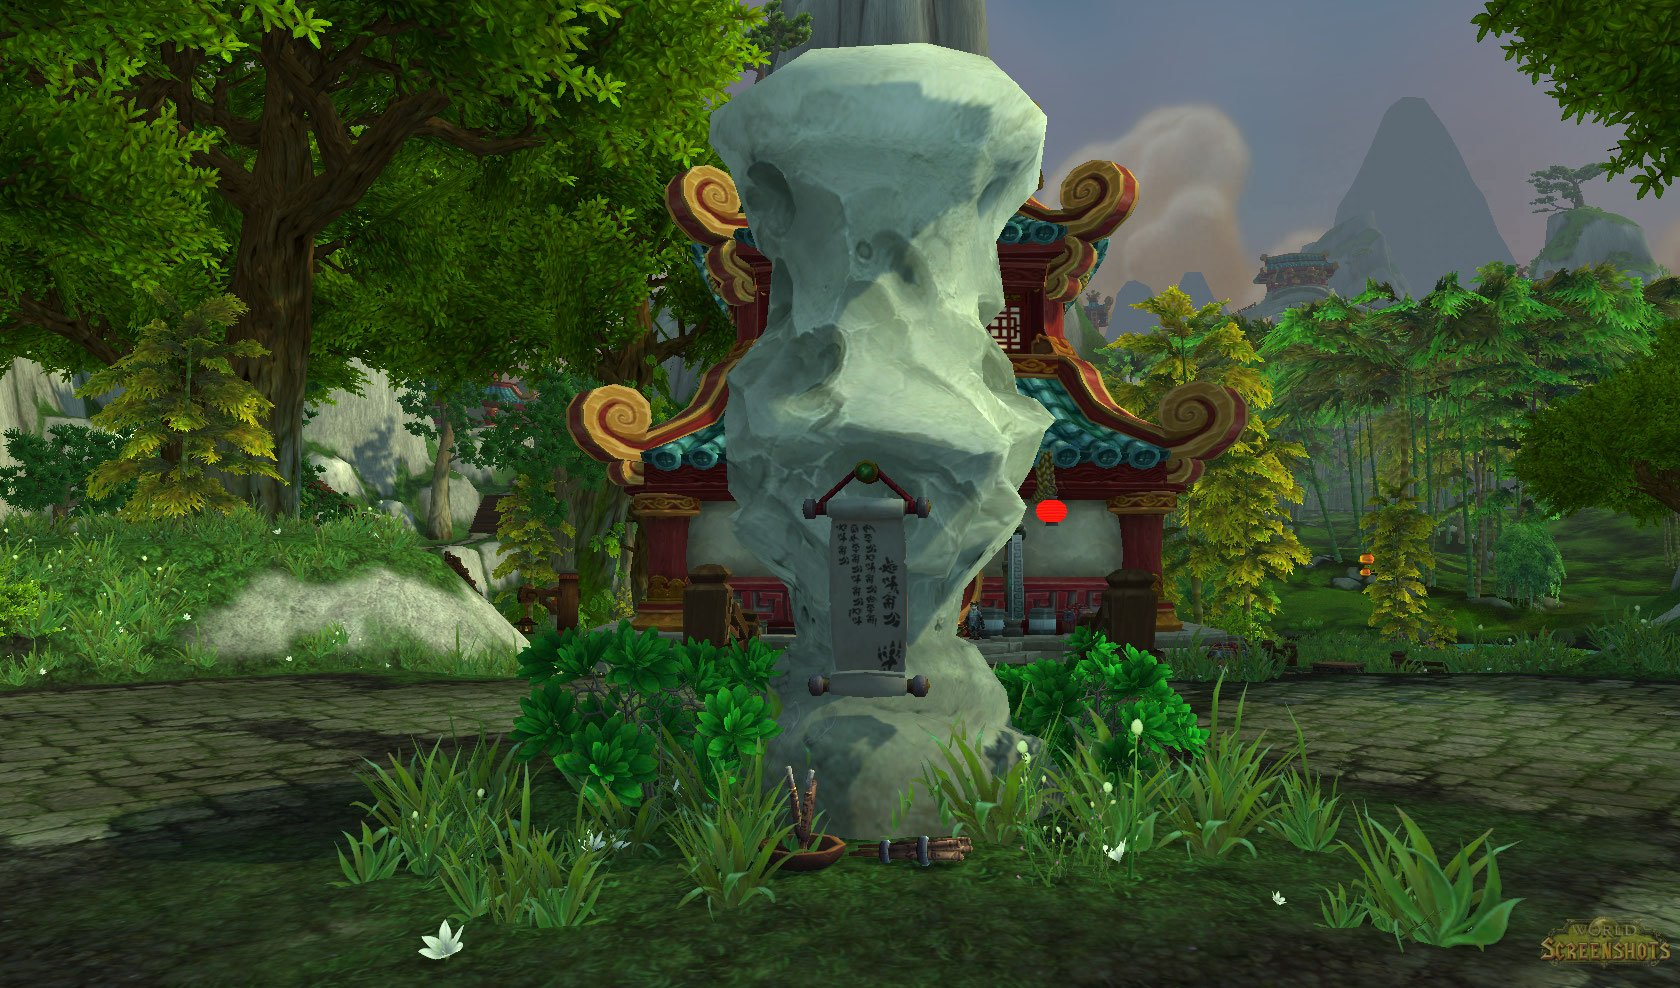 Greenstone Village http://wow-screenshots.net/screenshots/view/statue-in-the-middle-of-greenstone-village.html